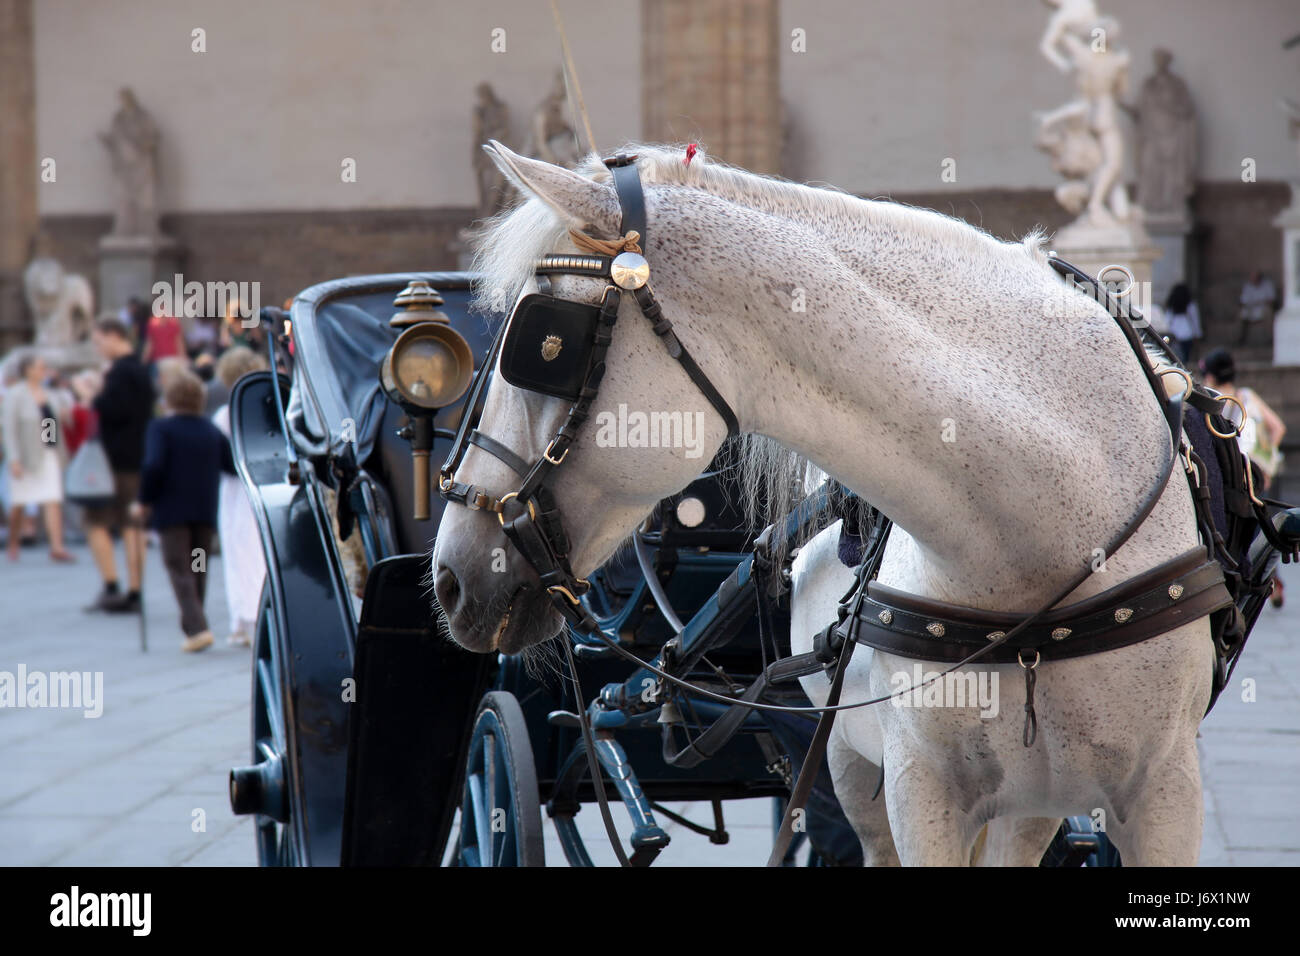 horse carriage on piazza della signoria - Stock Image